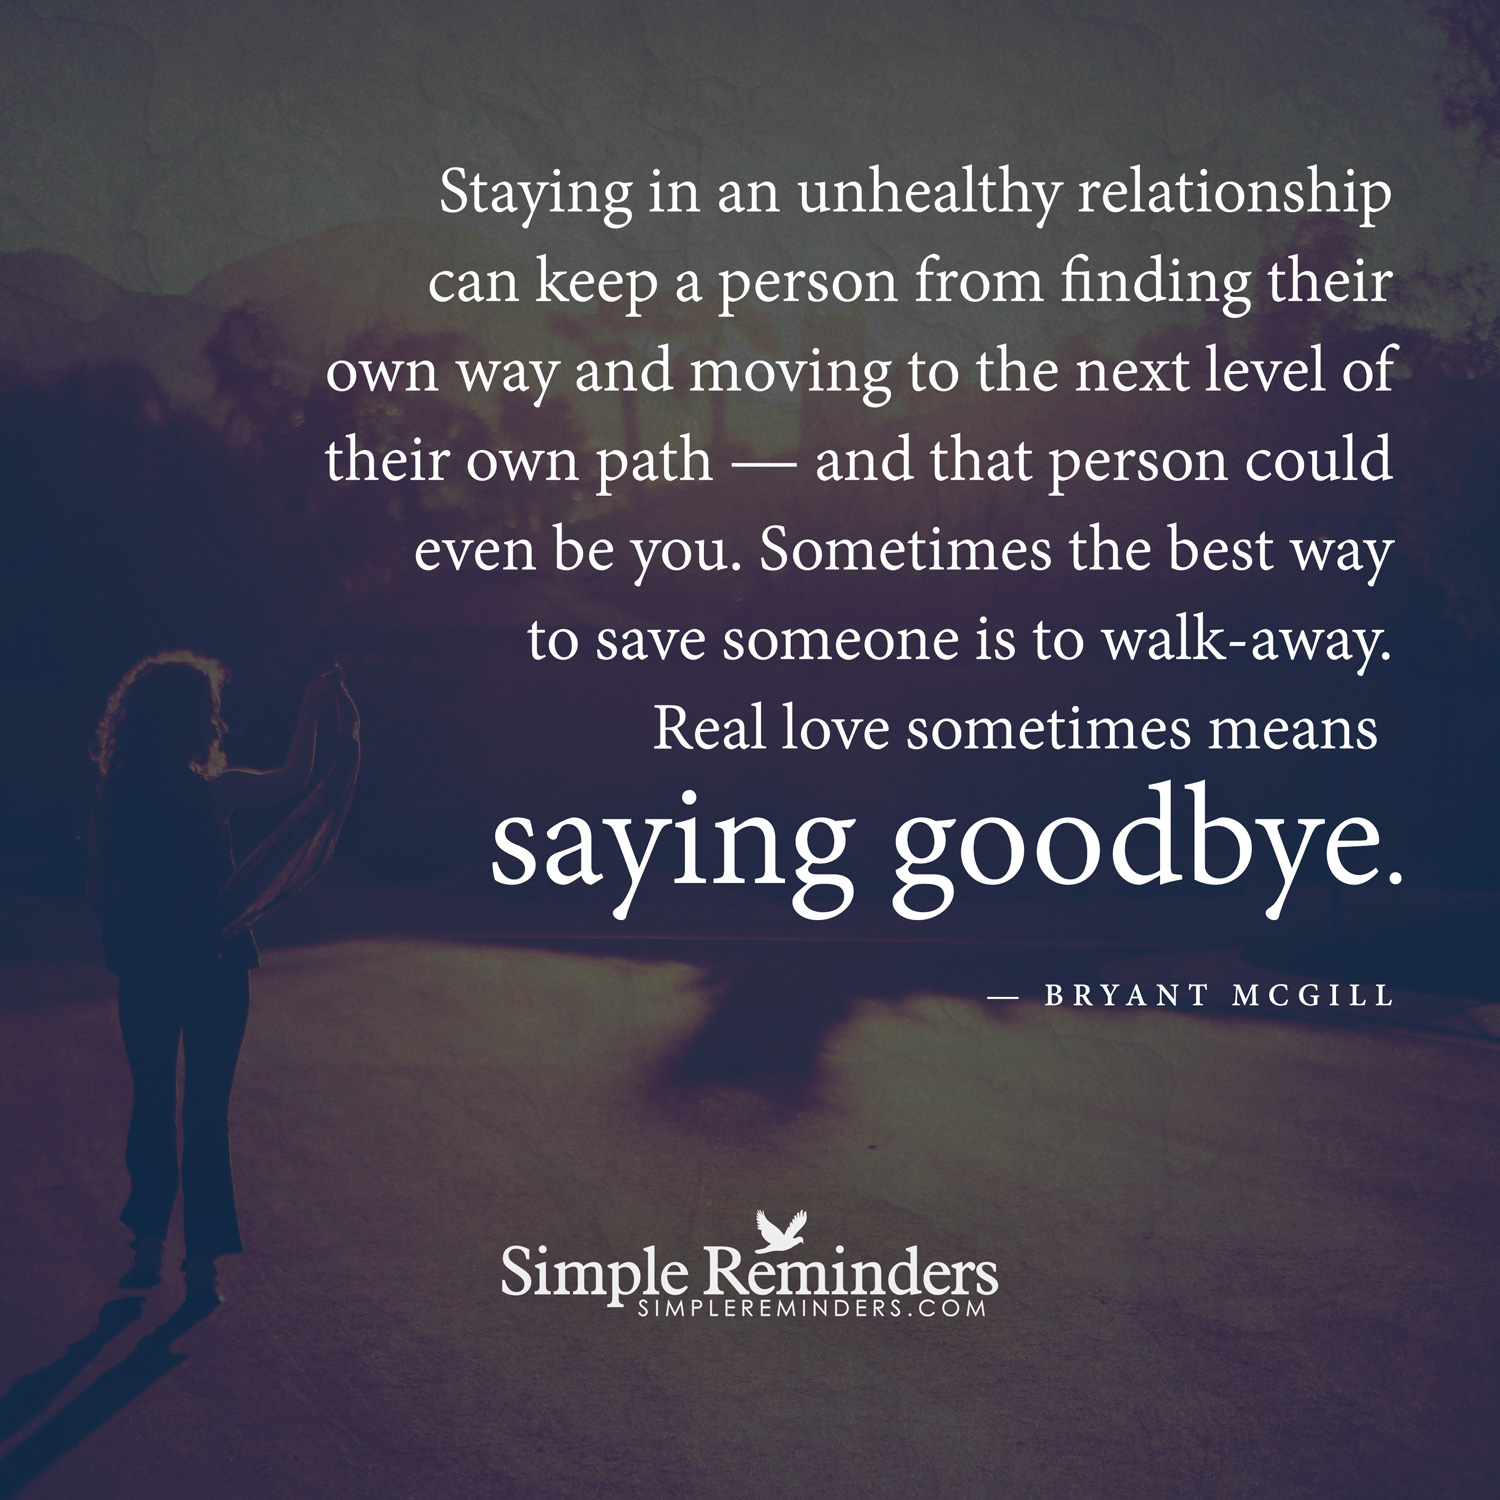 Quotes About Your Relationship Going Bad 16 Quotes